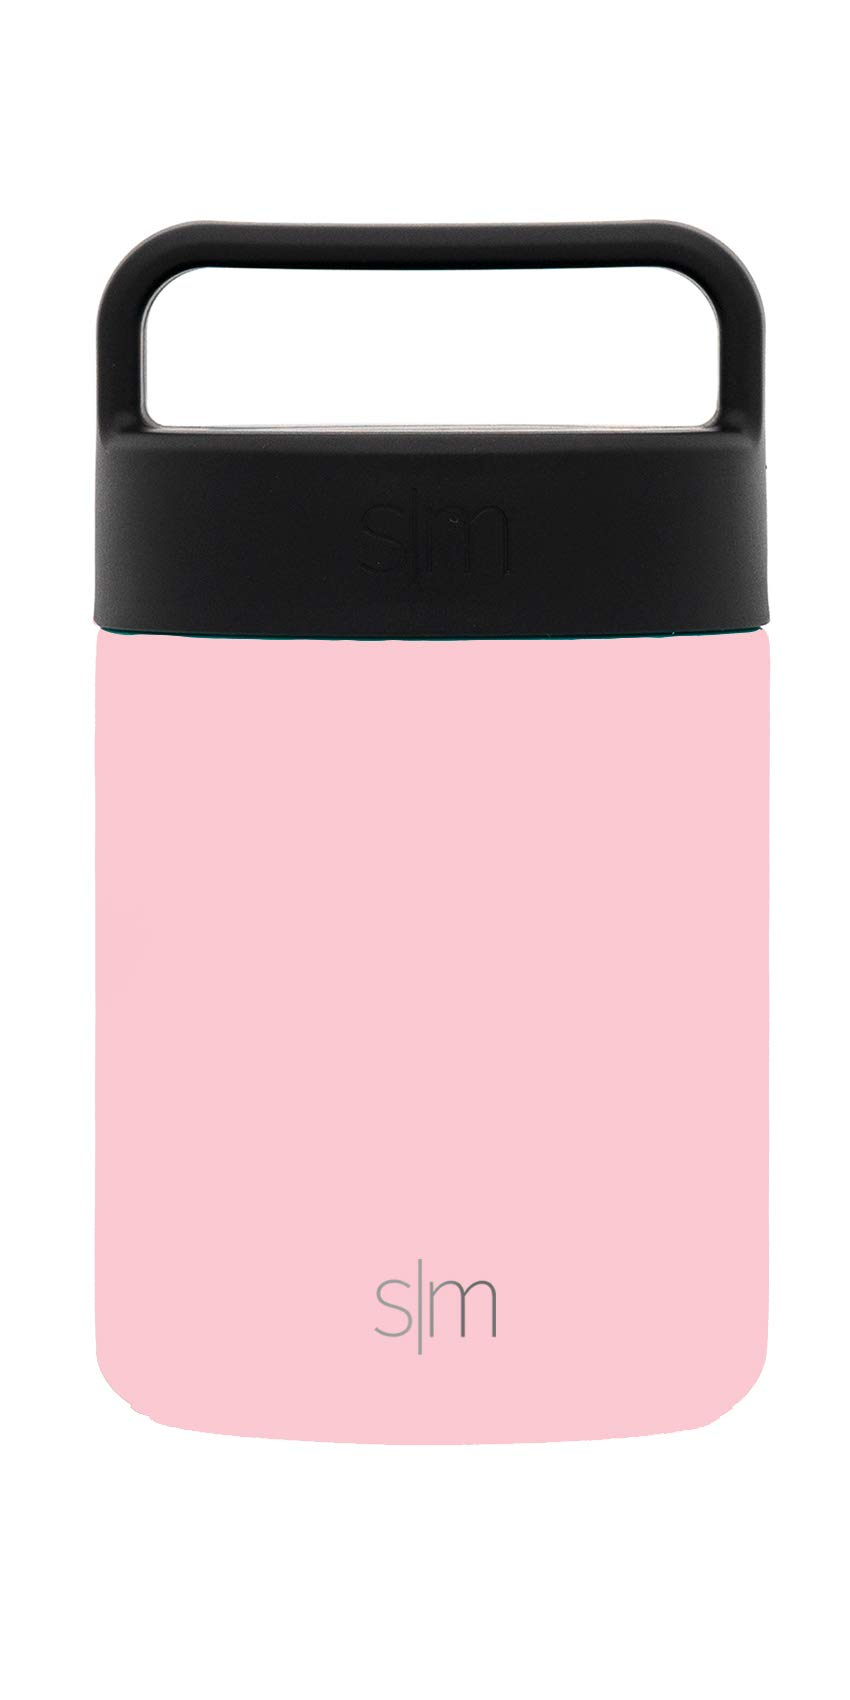 Simple Modern 12oz Provision Food Jar with Handle Lid - Vacuum Insulated Thermos 18/8 Stainless Steel Hydro Leak Proof Food Storage Container Flask - Blush